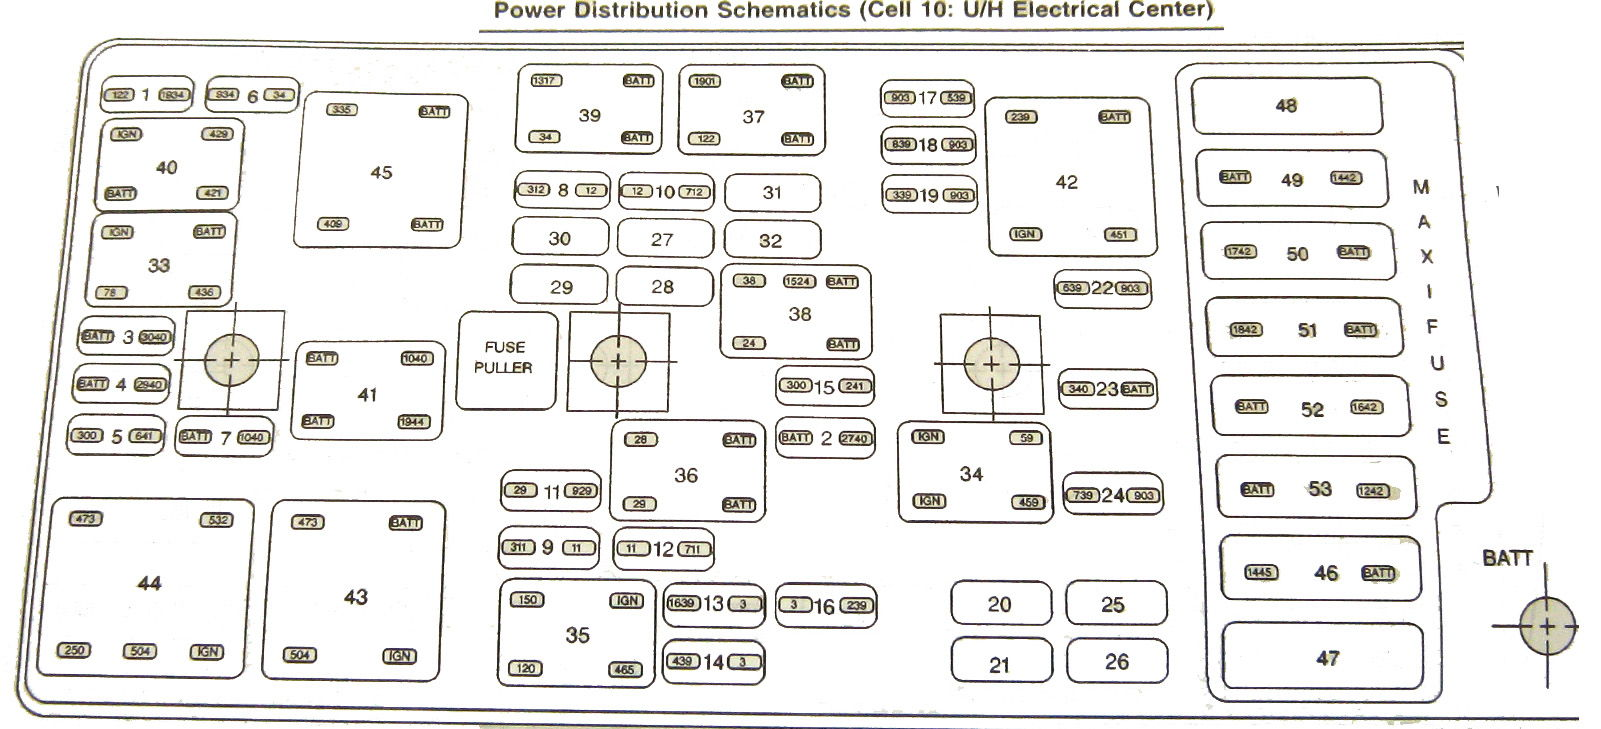 hight resolution of c5 fuse diagram simple wiring diagram schema rh 10 lodge finder de c5 corvette fuse box diagram c5 corvette fuse panel diagram